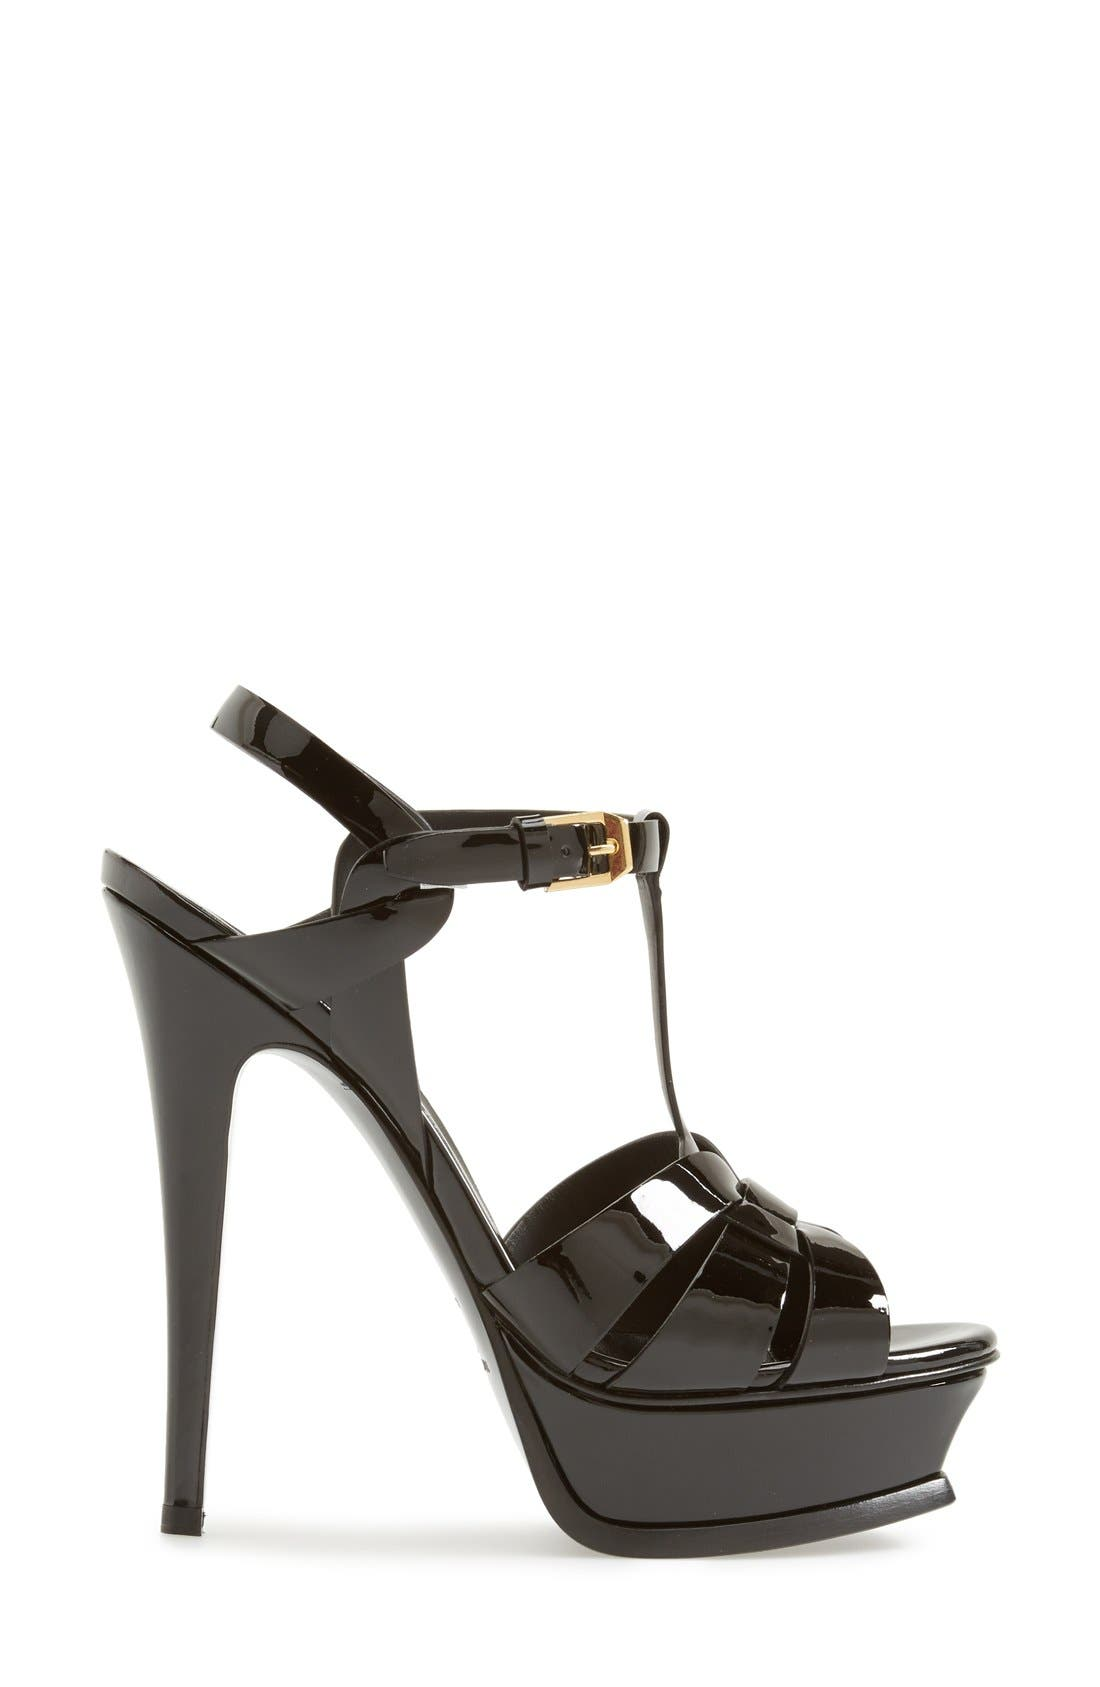 SAINT LAURENT, Tribute T-Strap Platform Sandal, Alternate thumbnail 3, color, BLACK PATENT